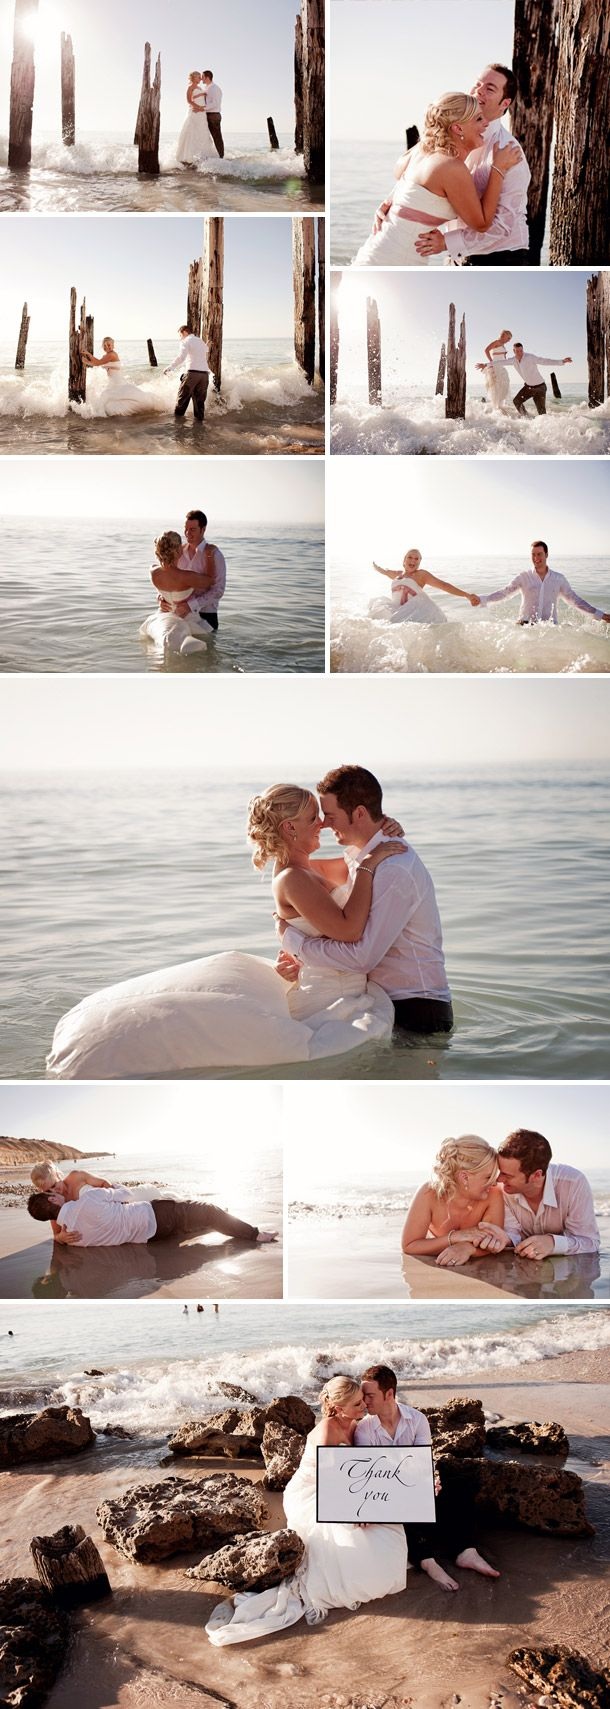 Wundervolles After-Wedding-Shooting von Angelsmith Photography